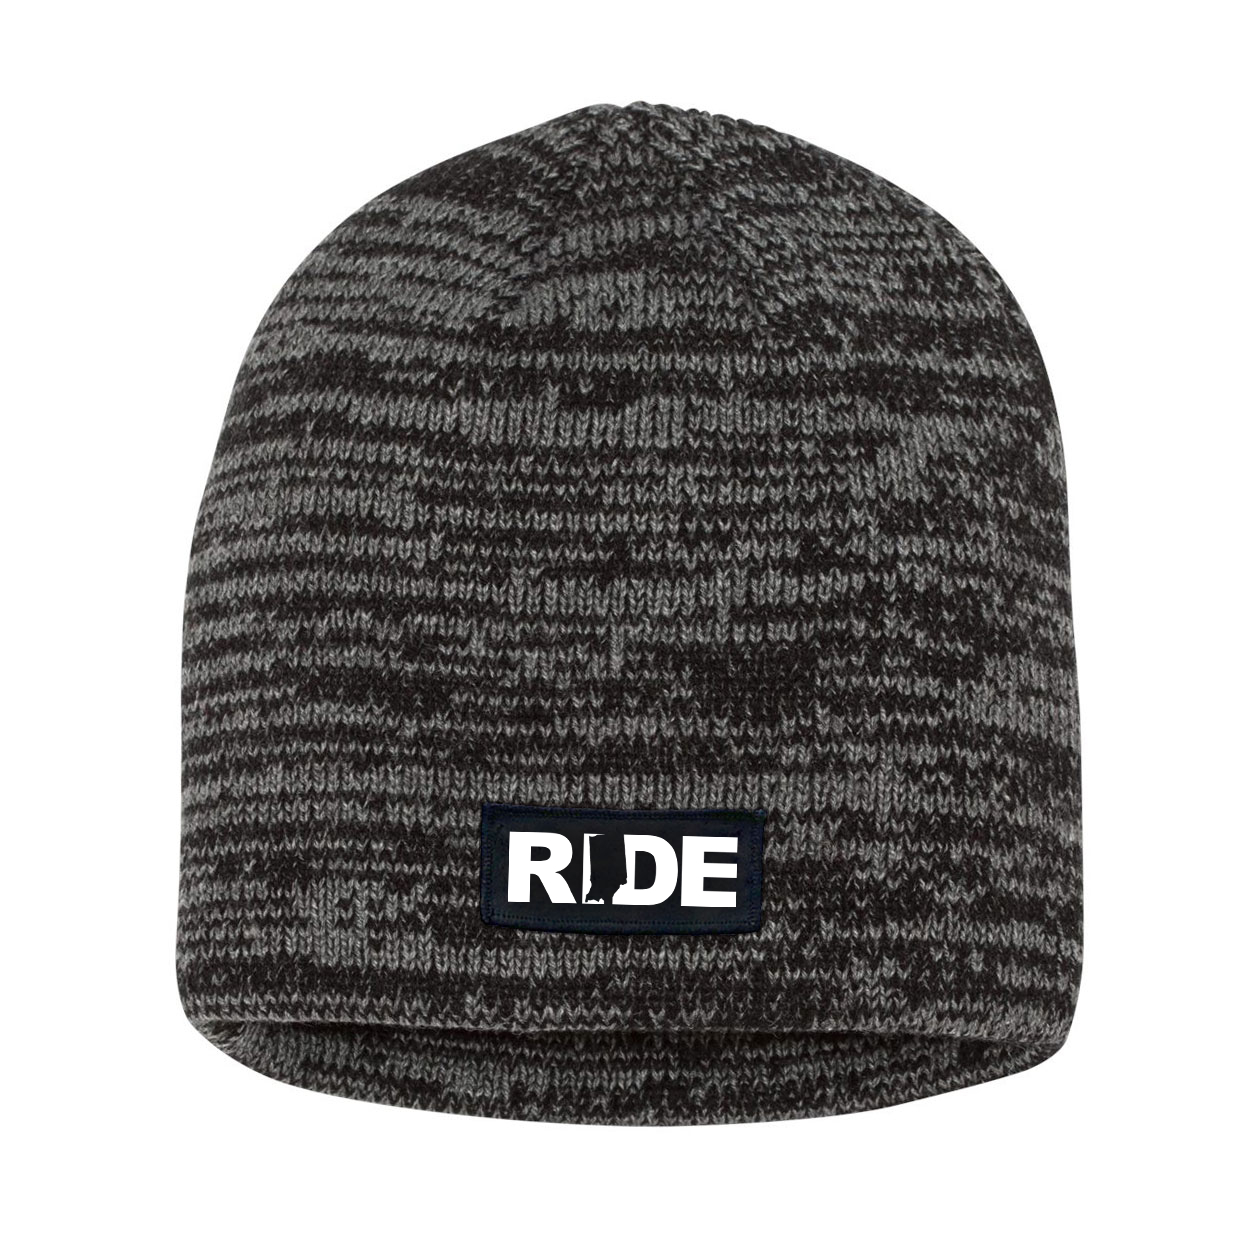 Ride Indiana Night Out Woven Patch Skully Marled Knit Beanie Black/Gray (White Logo)